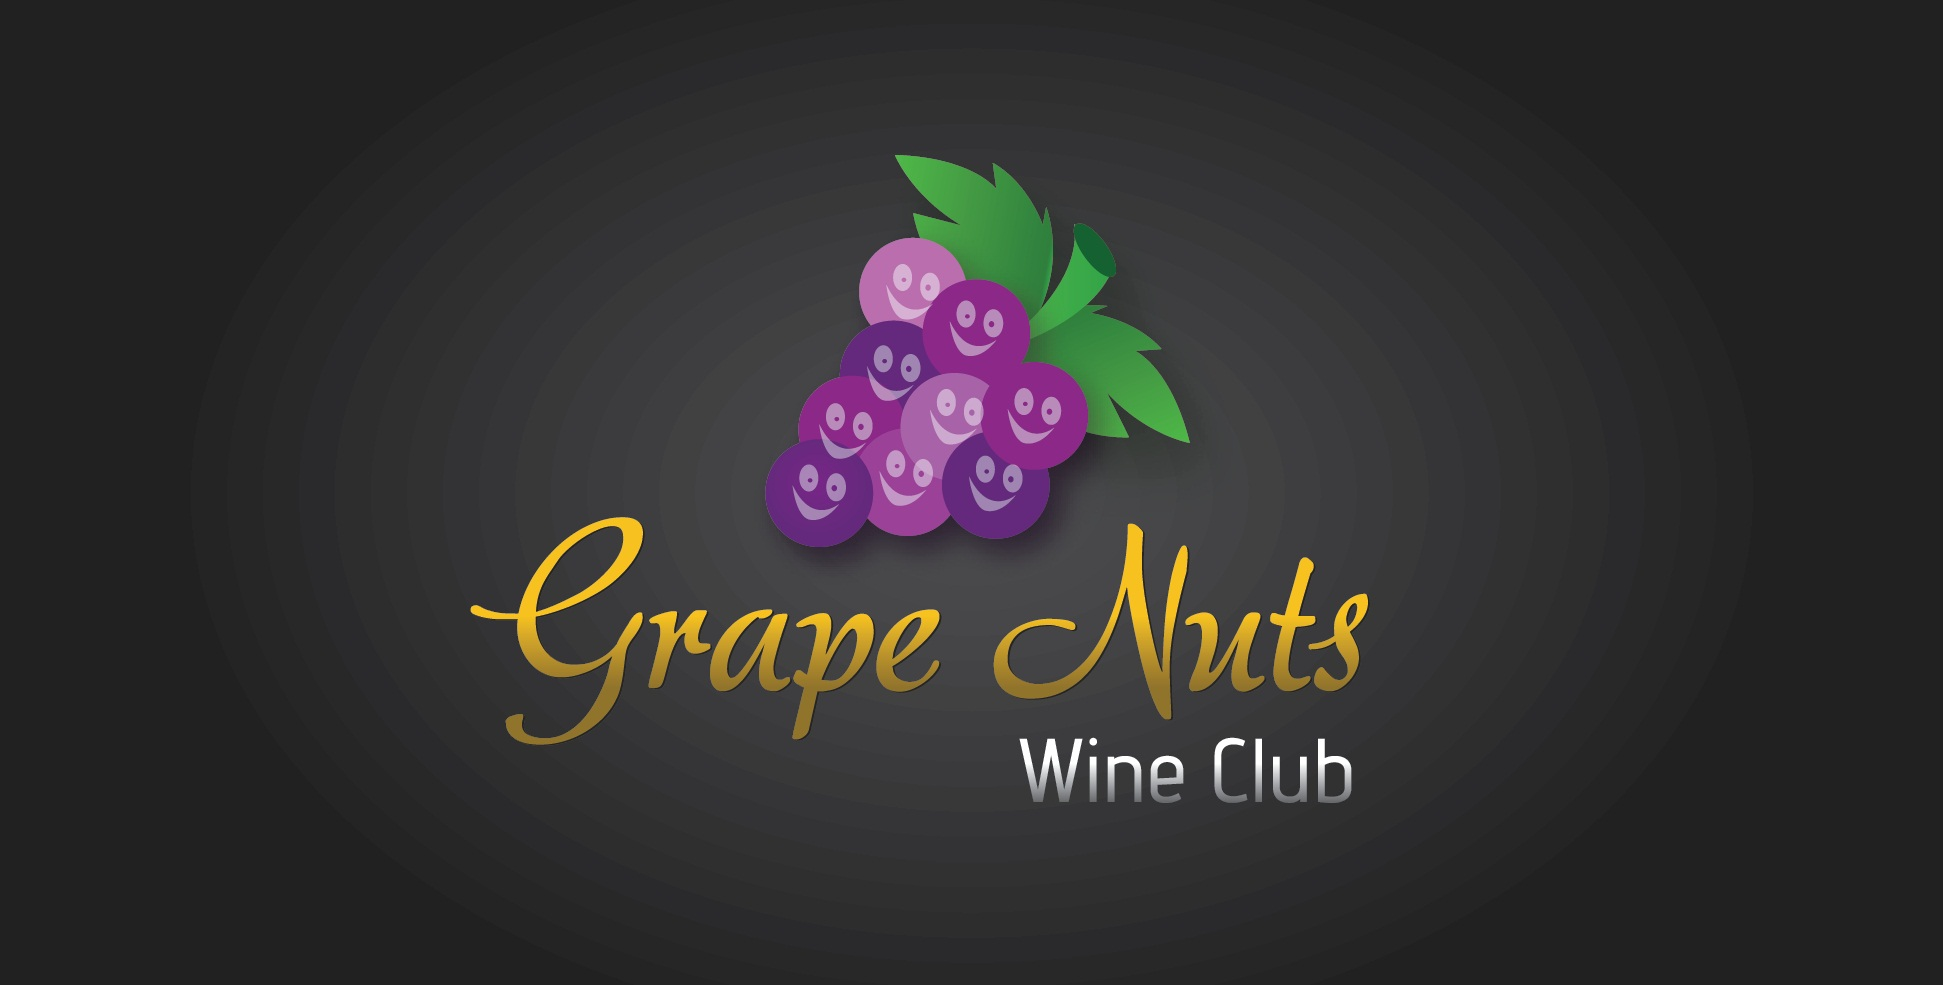 Logo Design by mediaproductionart - Entry No. 56 in the Logo Design Contest Artistic Logo Design for Grape Nuts Wine Club.